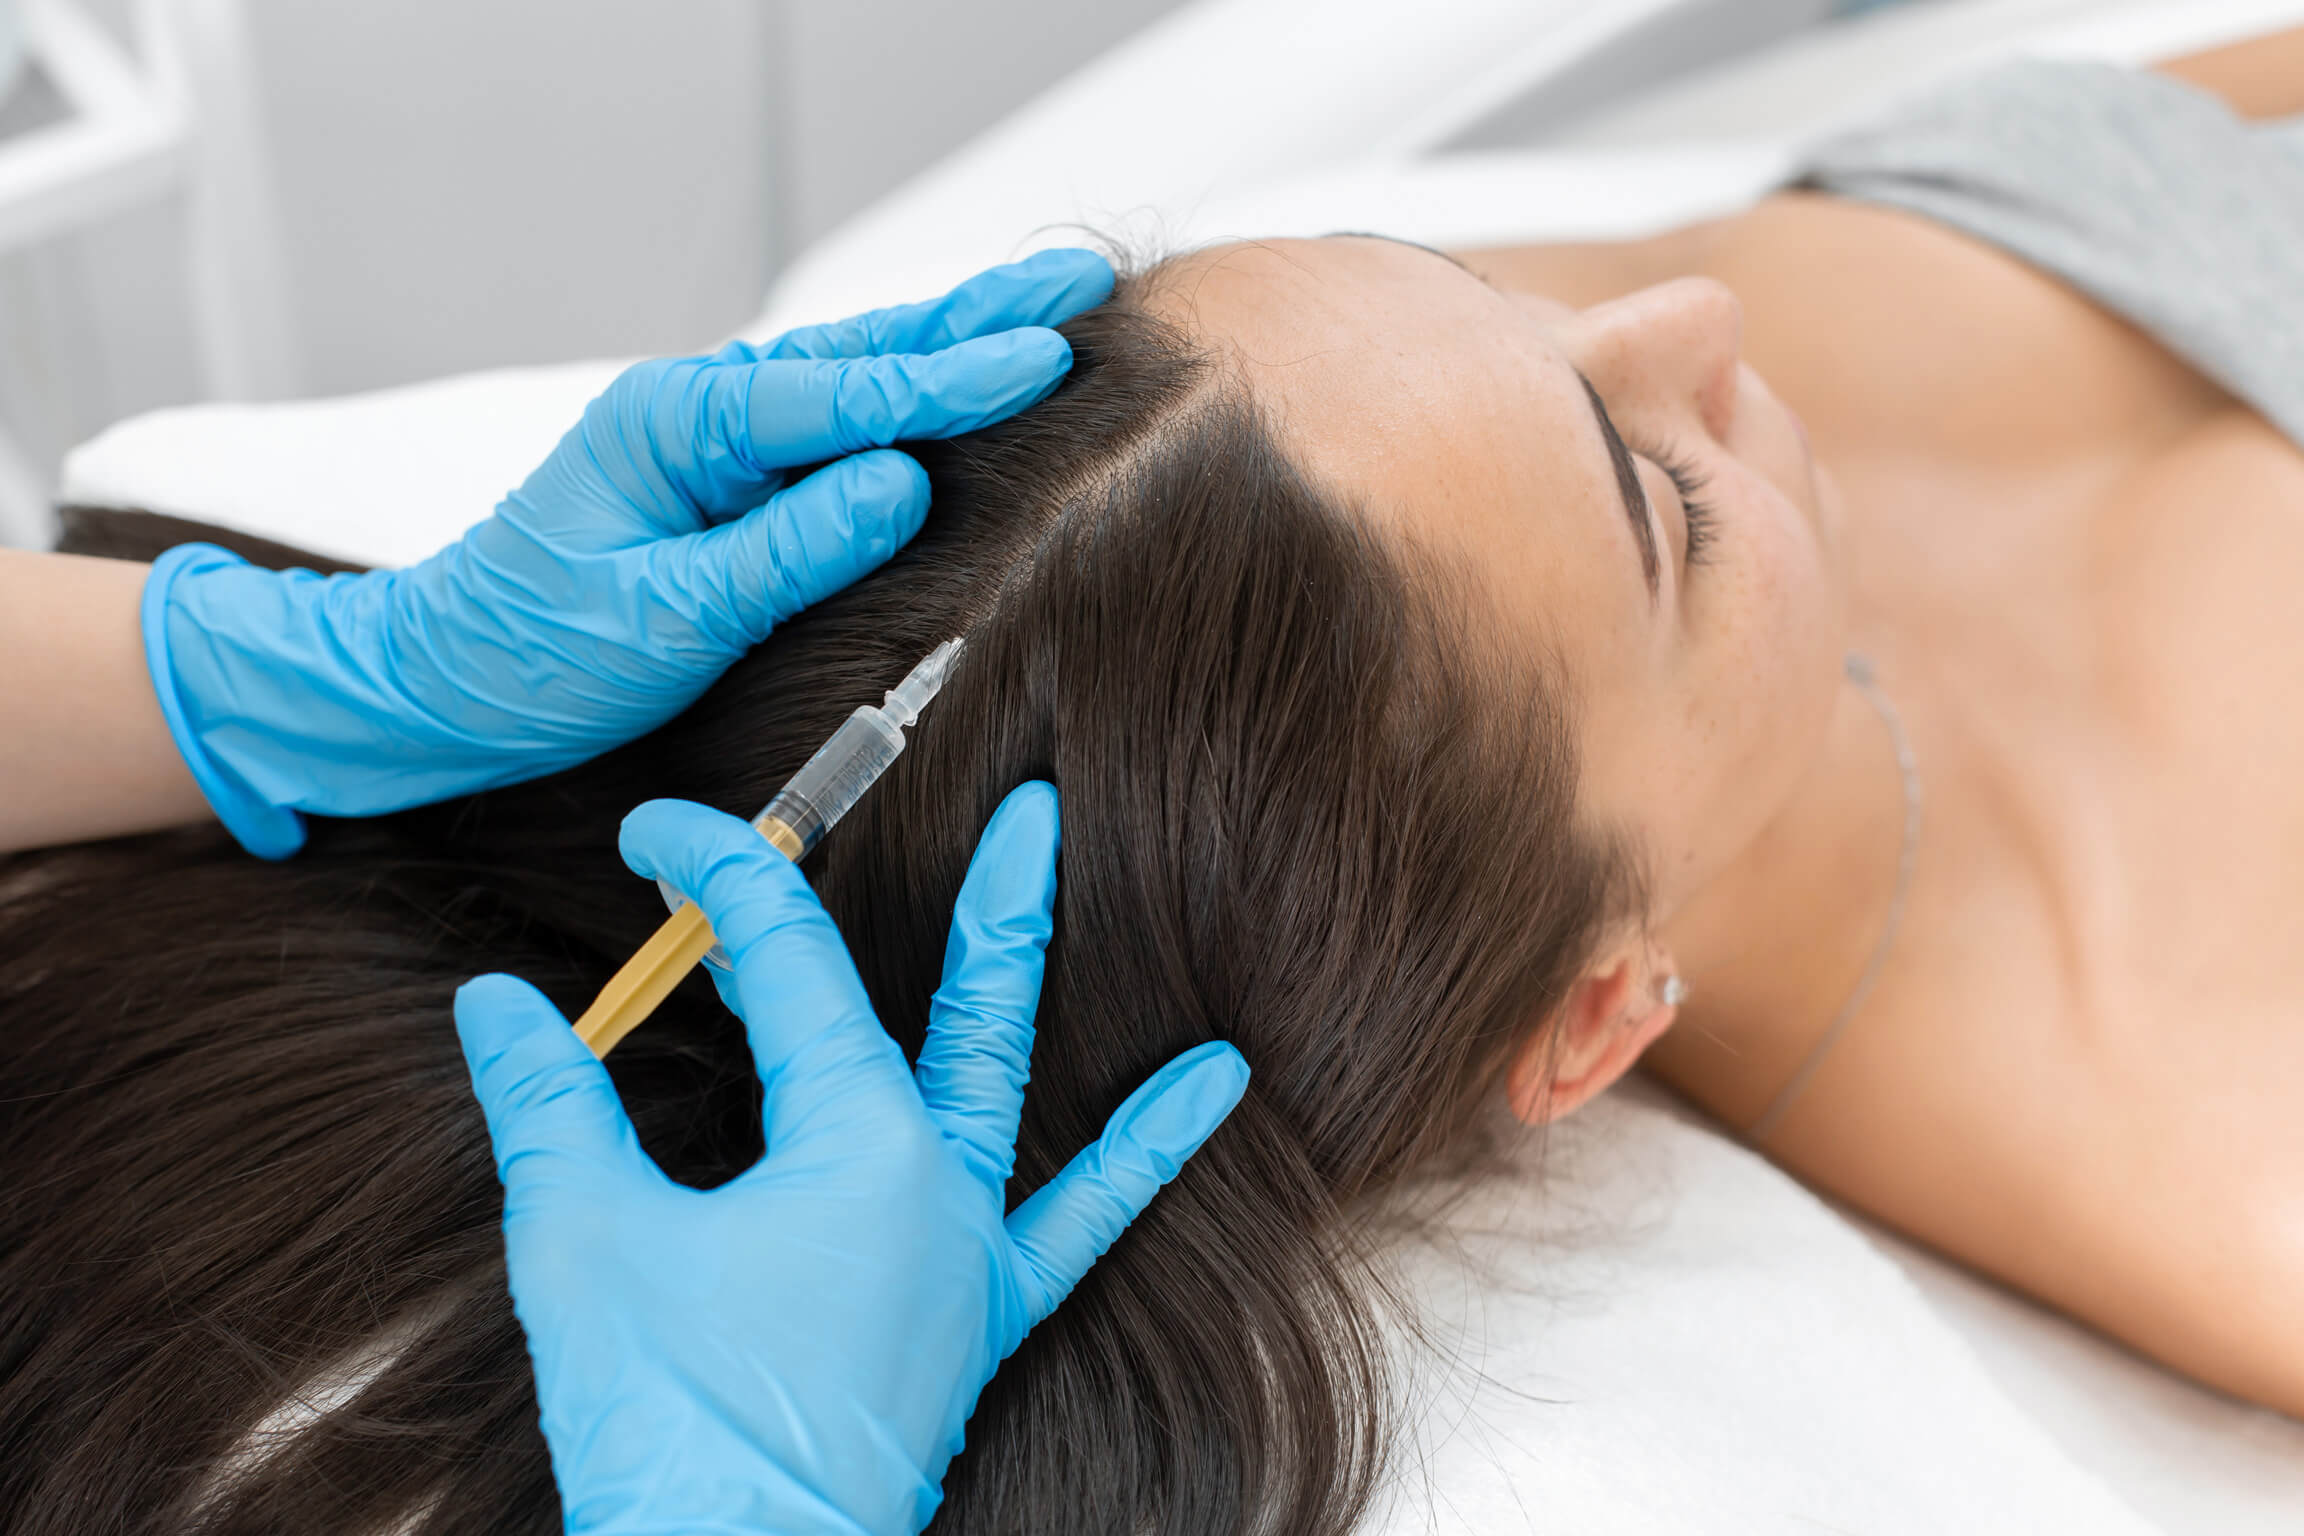 Platelet Rich Plasma (PRP) for Hair Regeneration